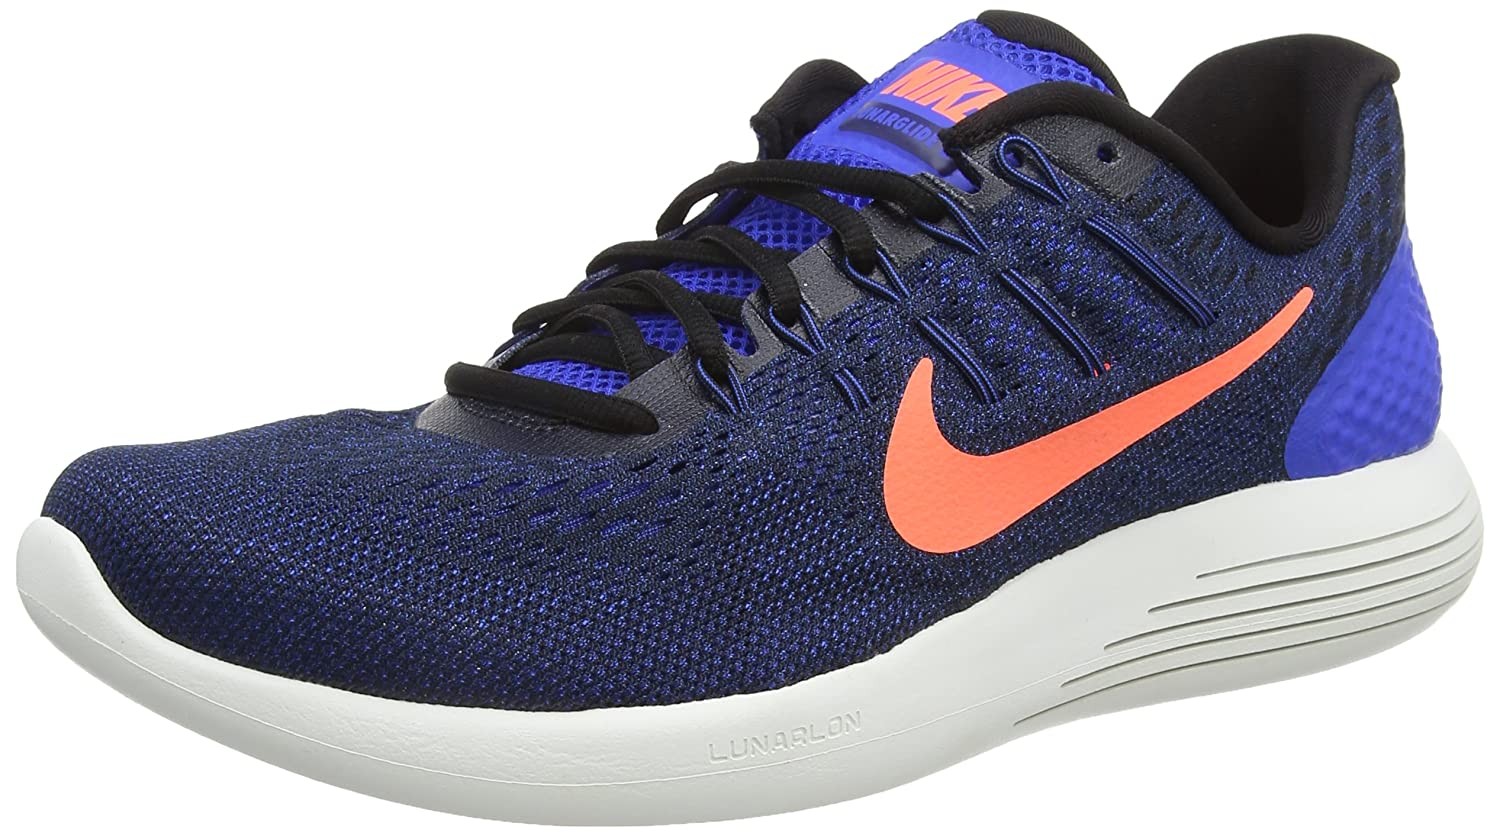 Nike Mens Lunarglide 8, Black / White - Anthracite B01CHGIUBU 11.5 D(M) US|Hyper Cobalt/Loyal Blue/Bright Mango/Black